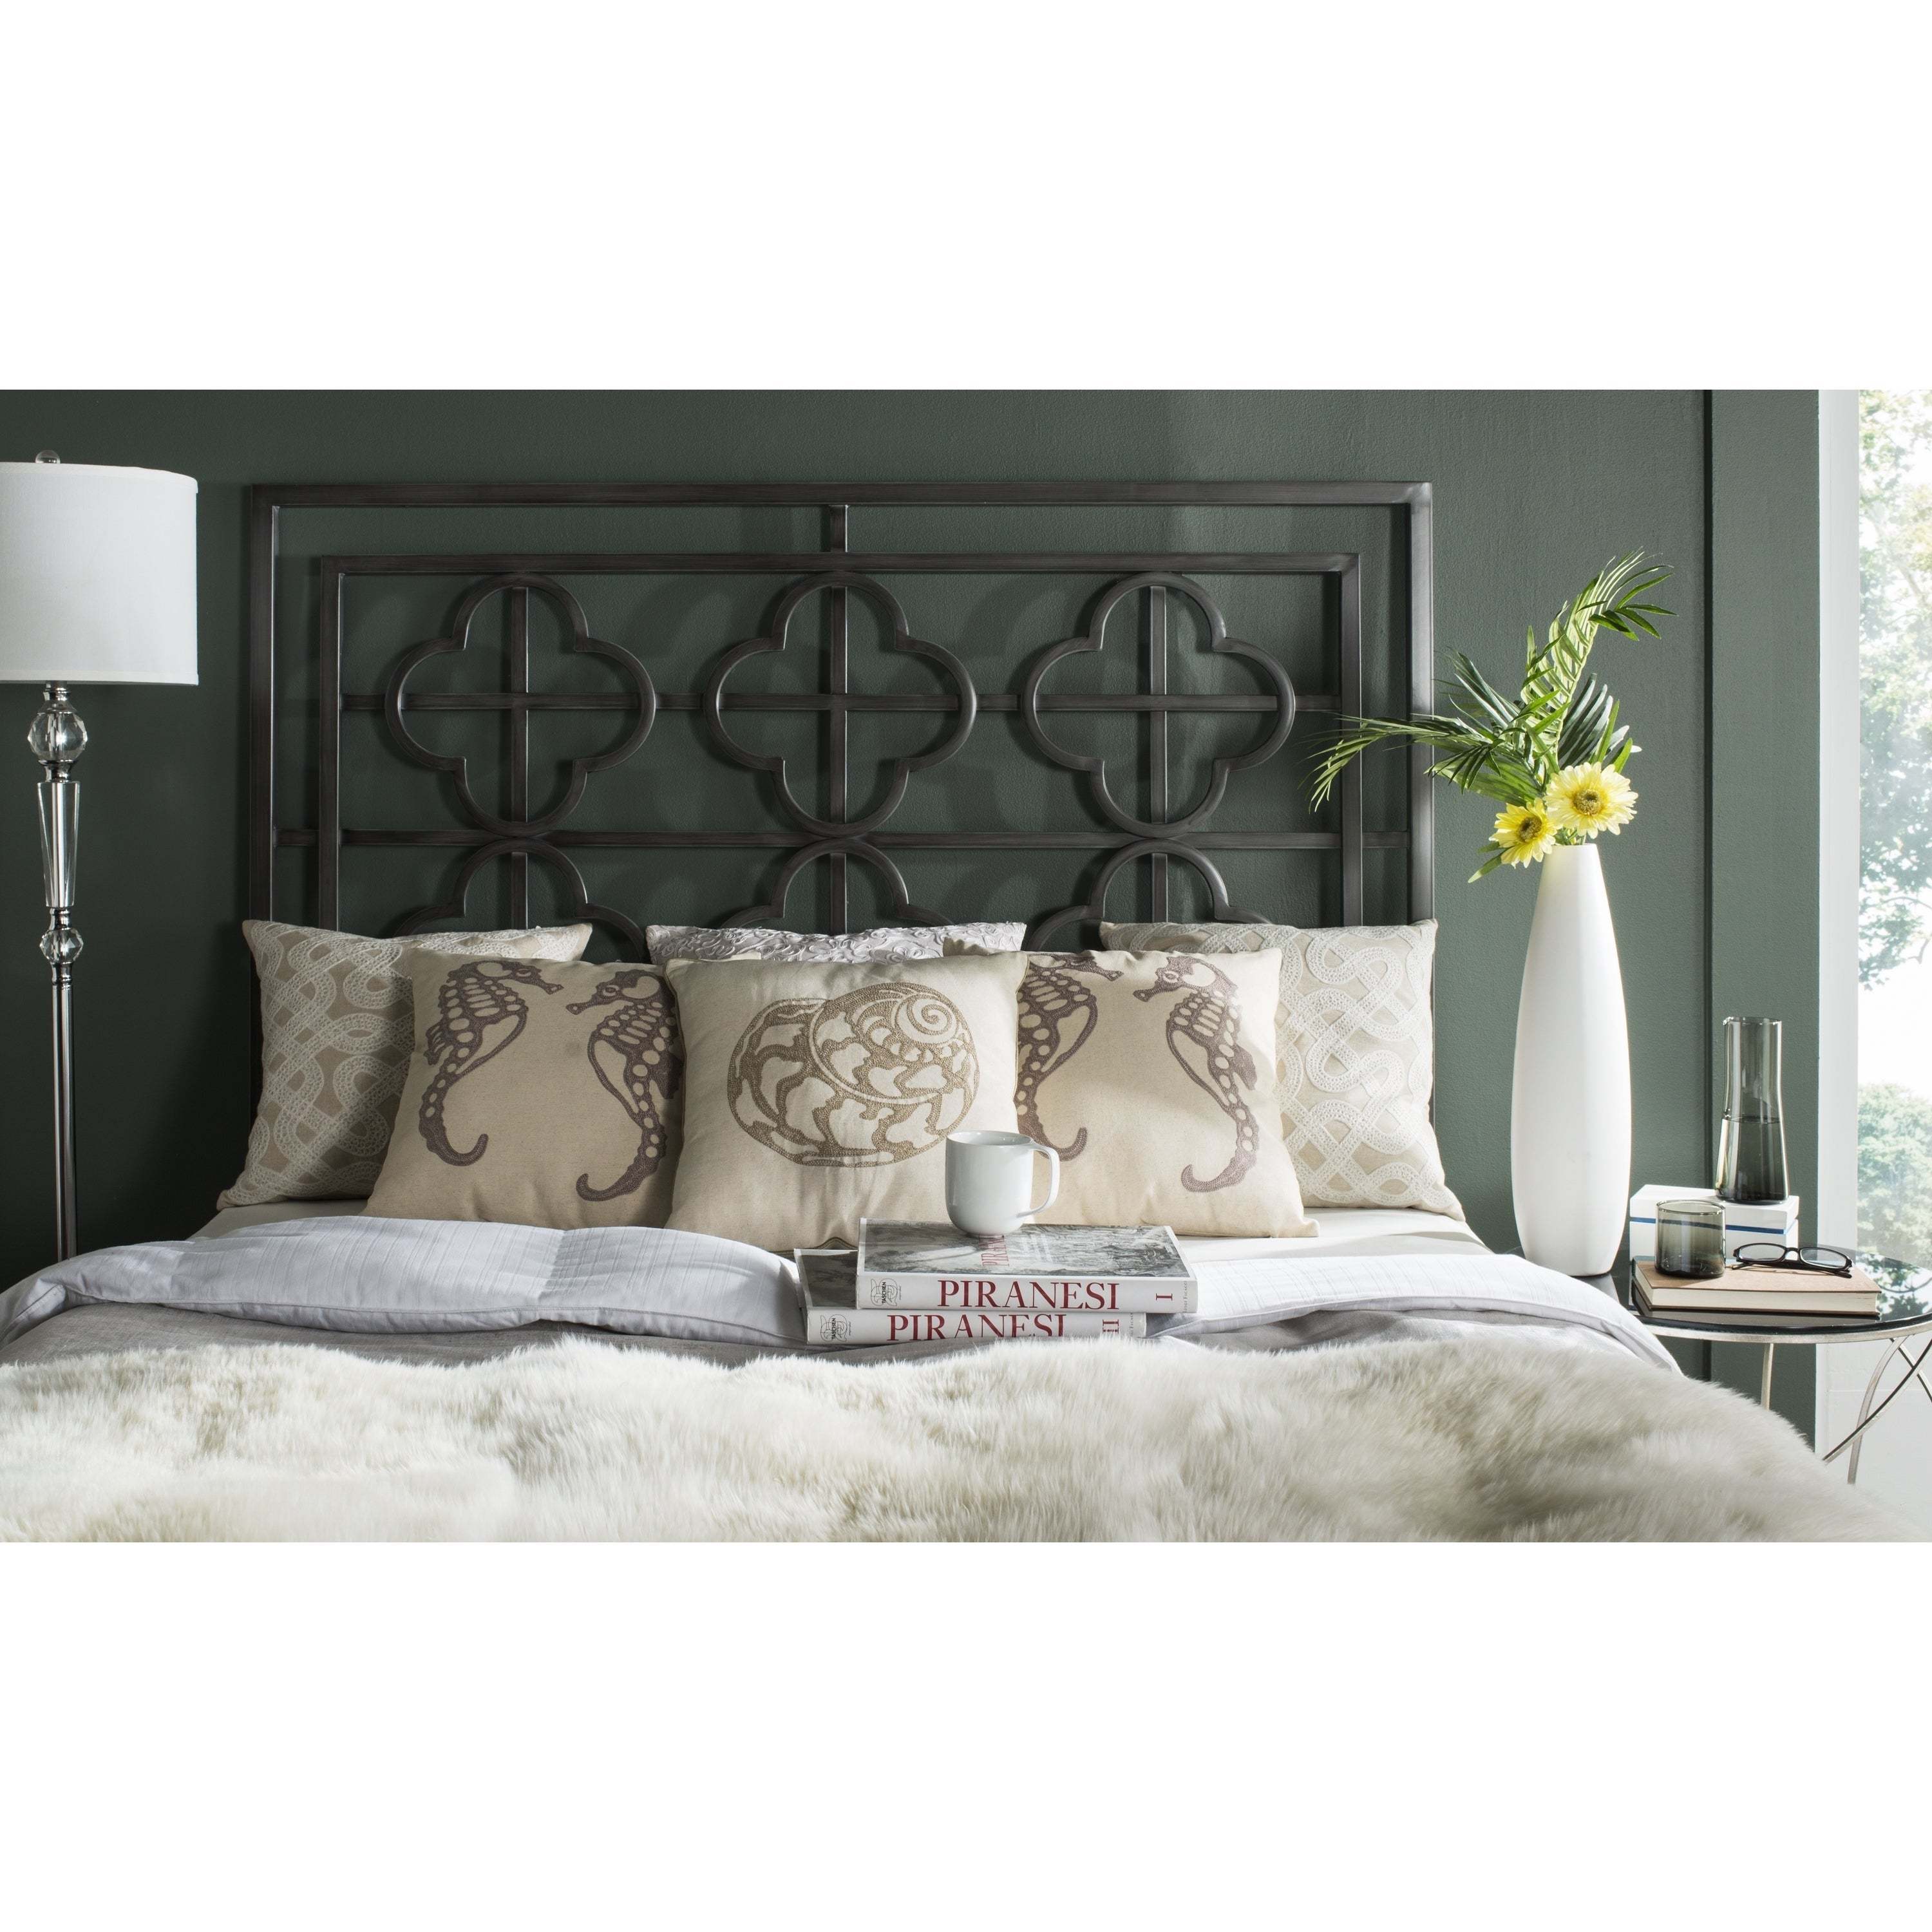 finish bed tufted queen button gold with quality in metal canopy headboard pin upholstered house size